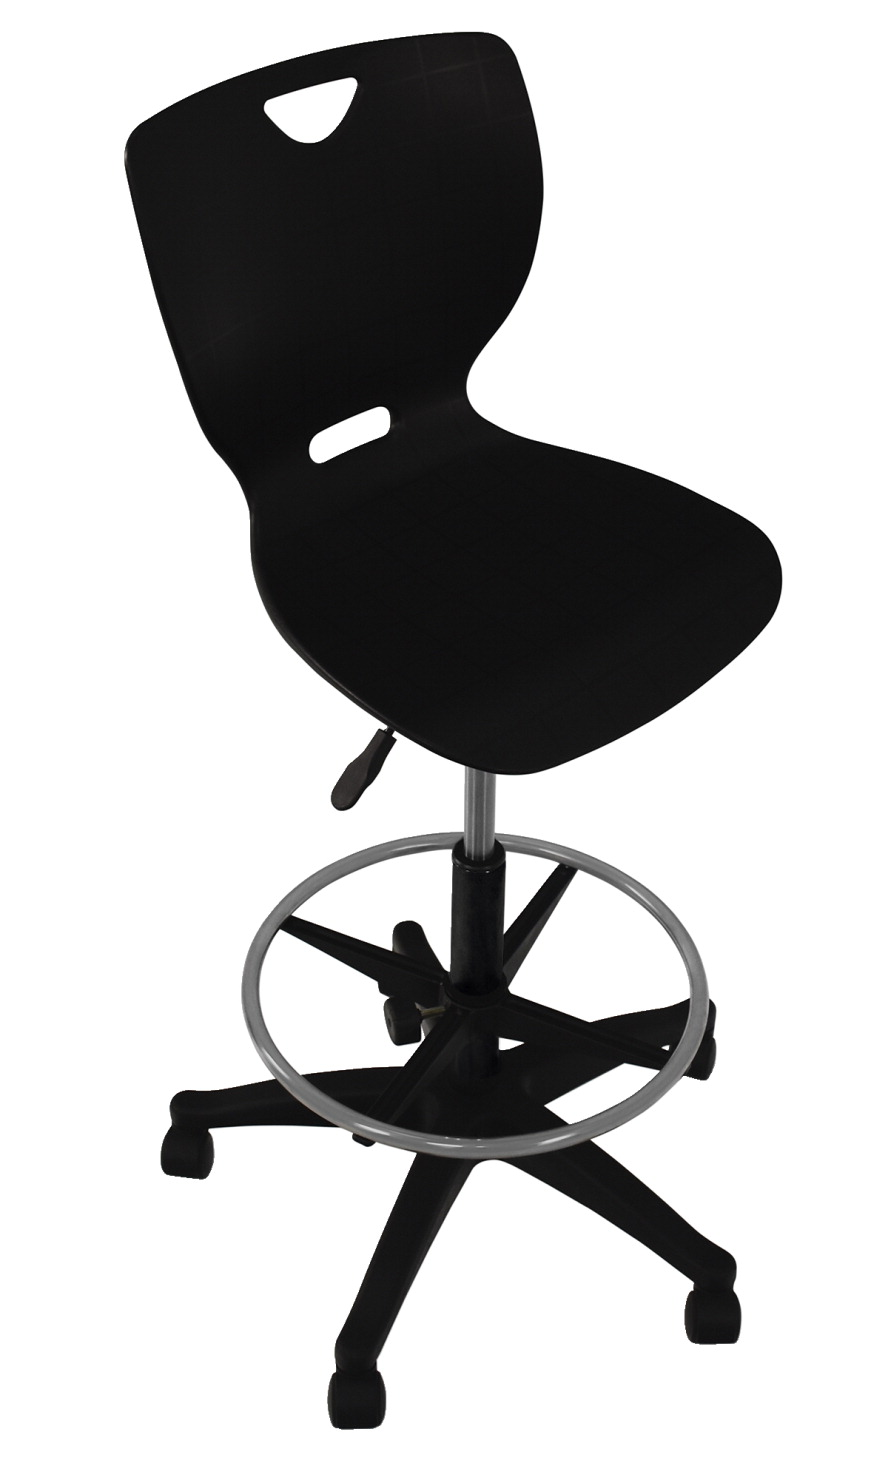 Classroom Select NeoClass Pneumatic Lift Chair with Adjustable Foot Ring, A Shell